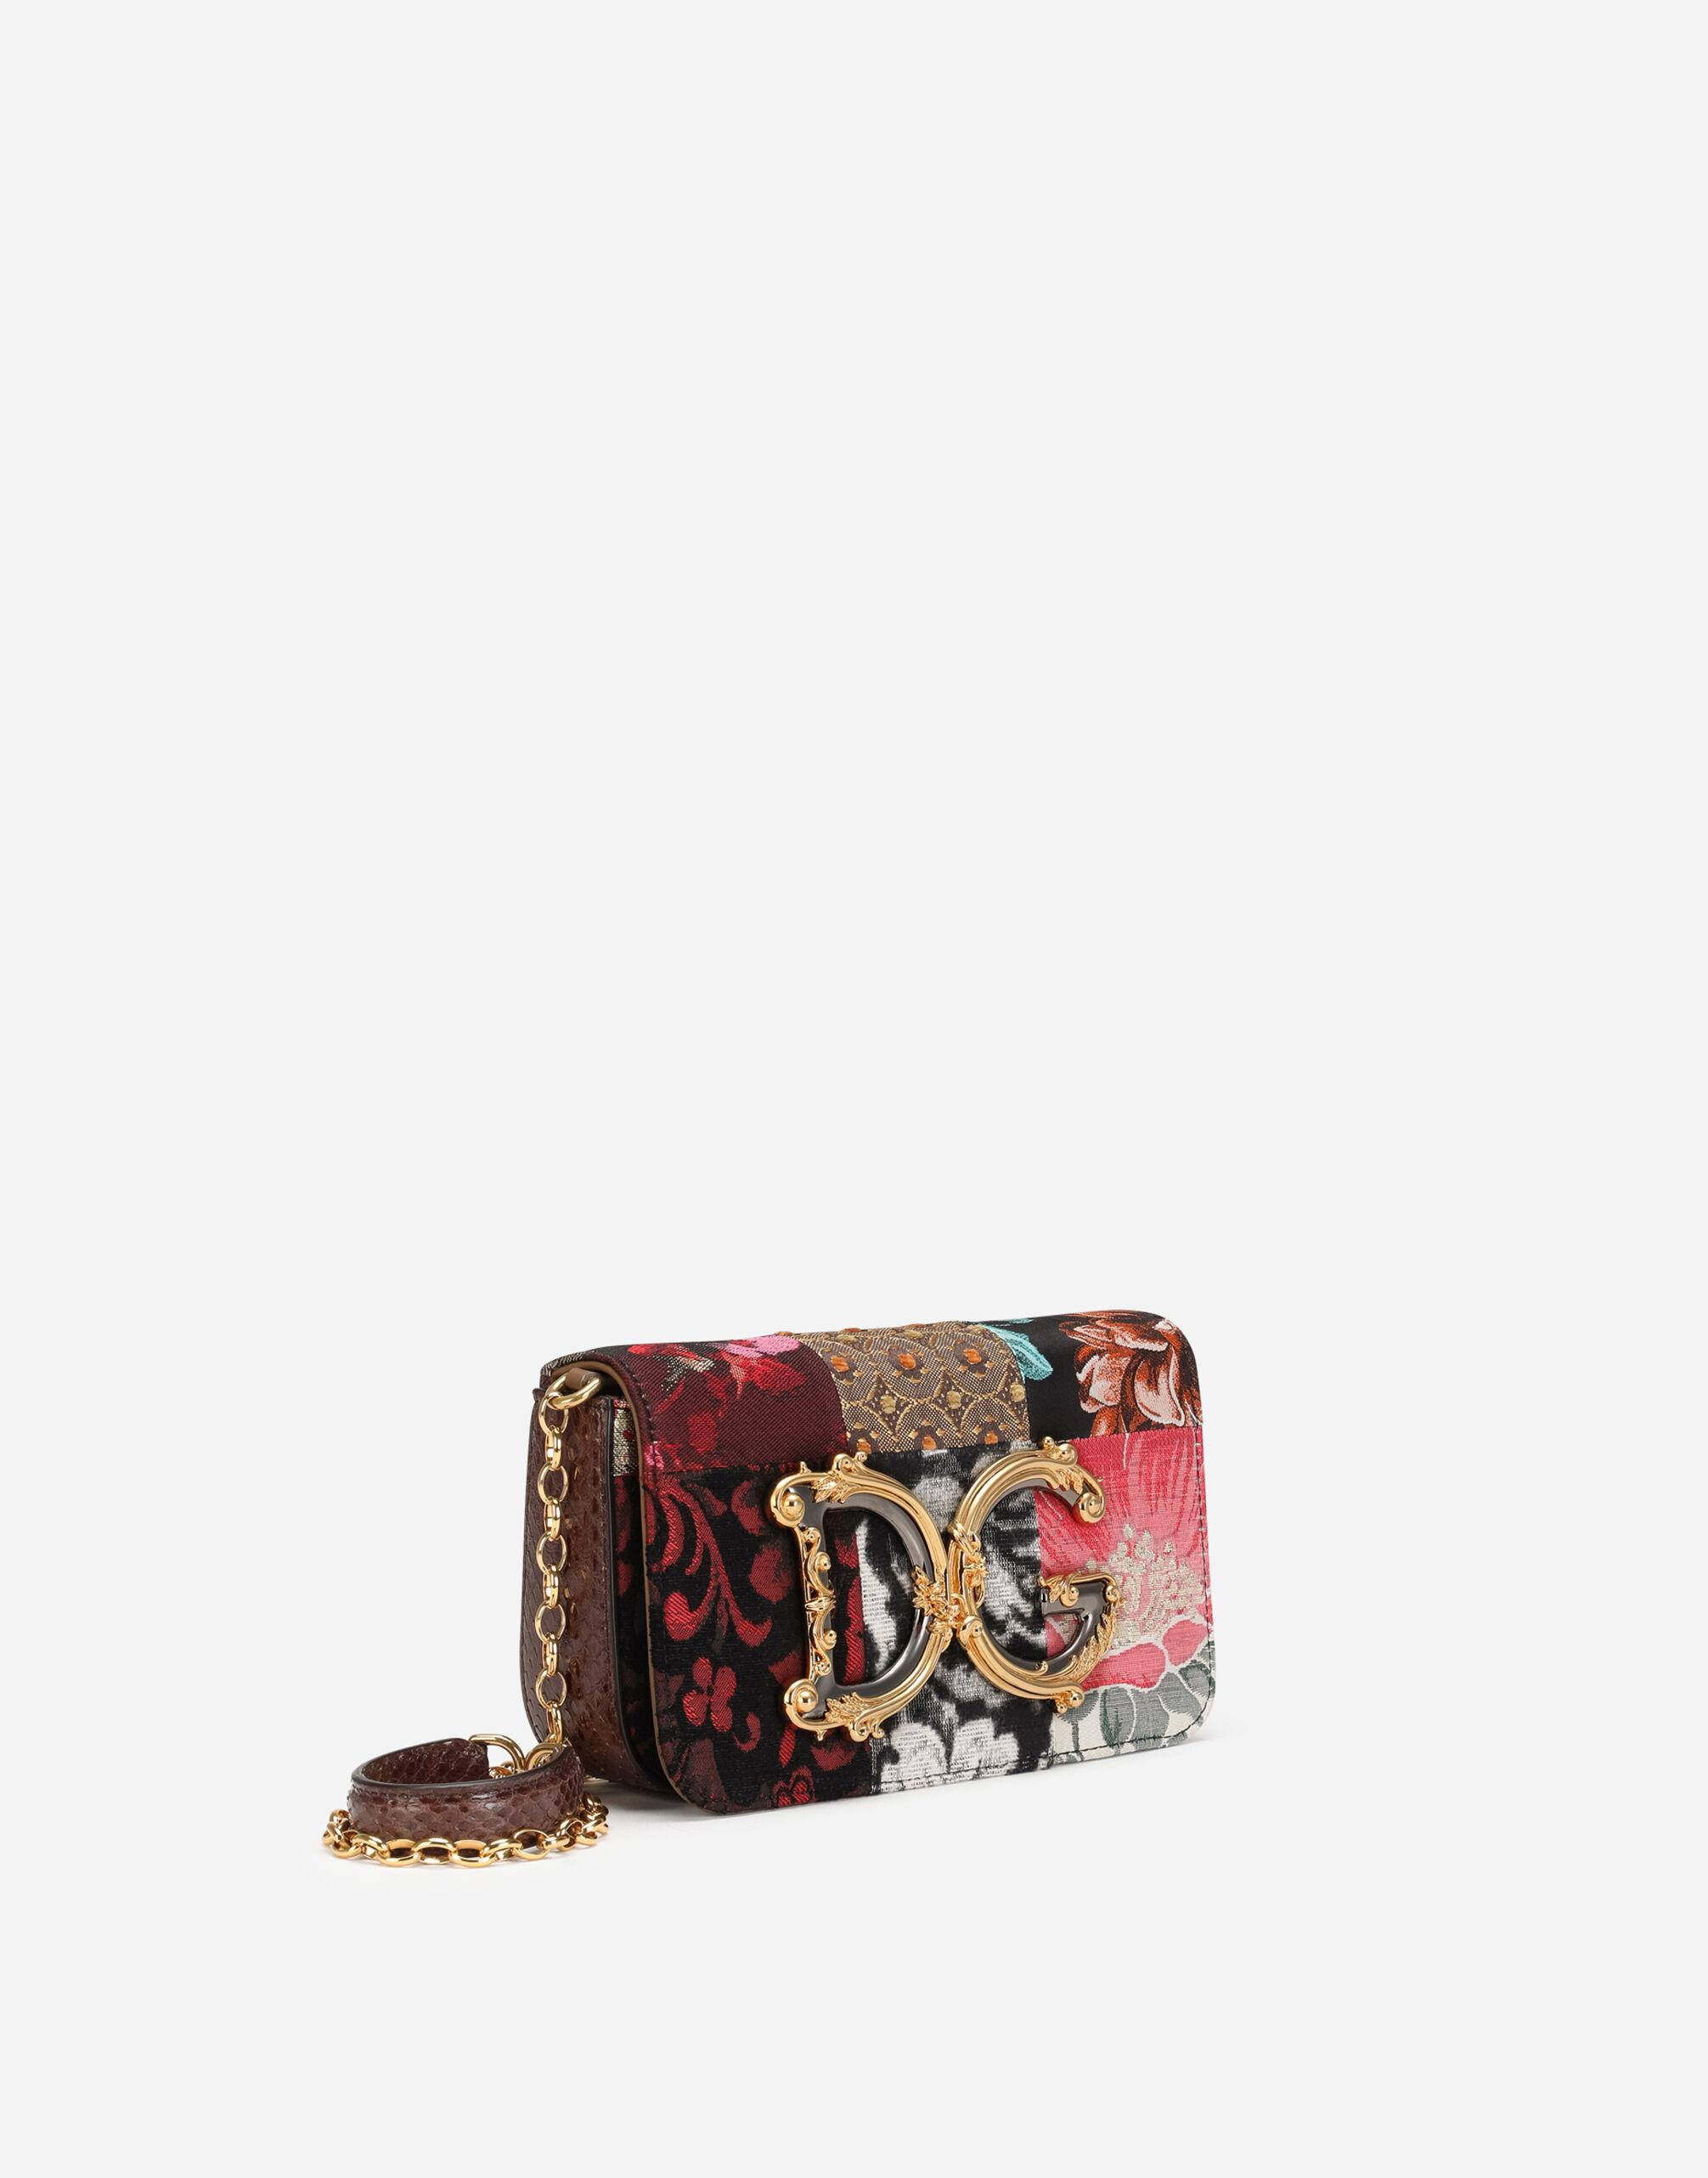 DG Girls clutch in patchwork fabric and ayers 1